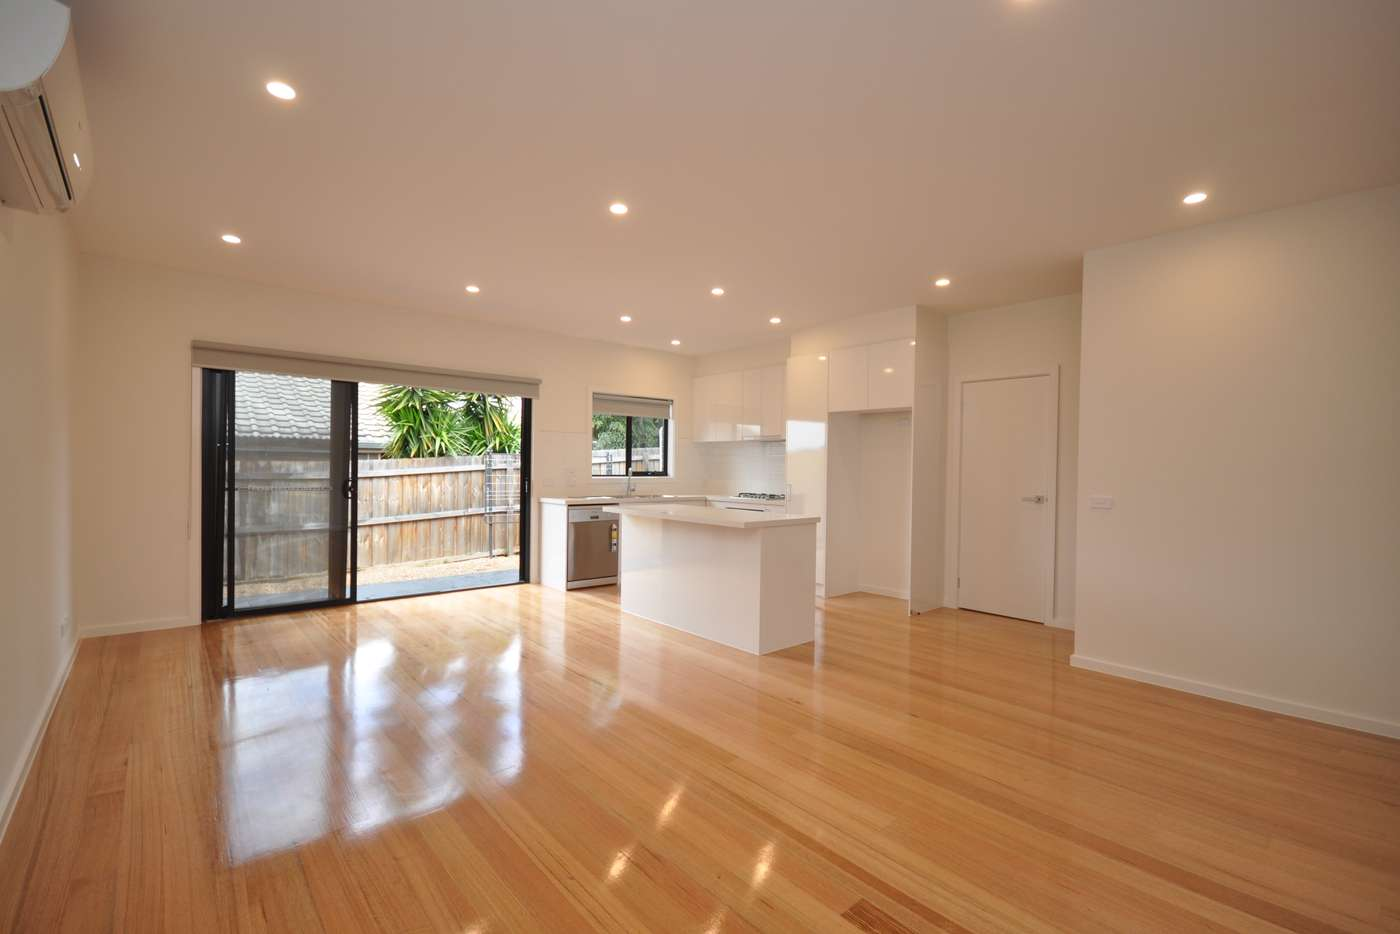 Sixth view of Homely townhouse listing, 4/19 Prospect Street, Glenroy VIC 3046